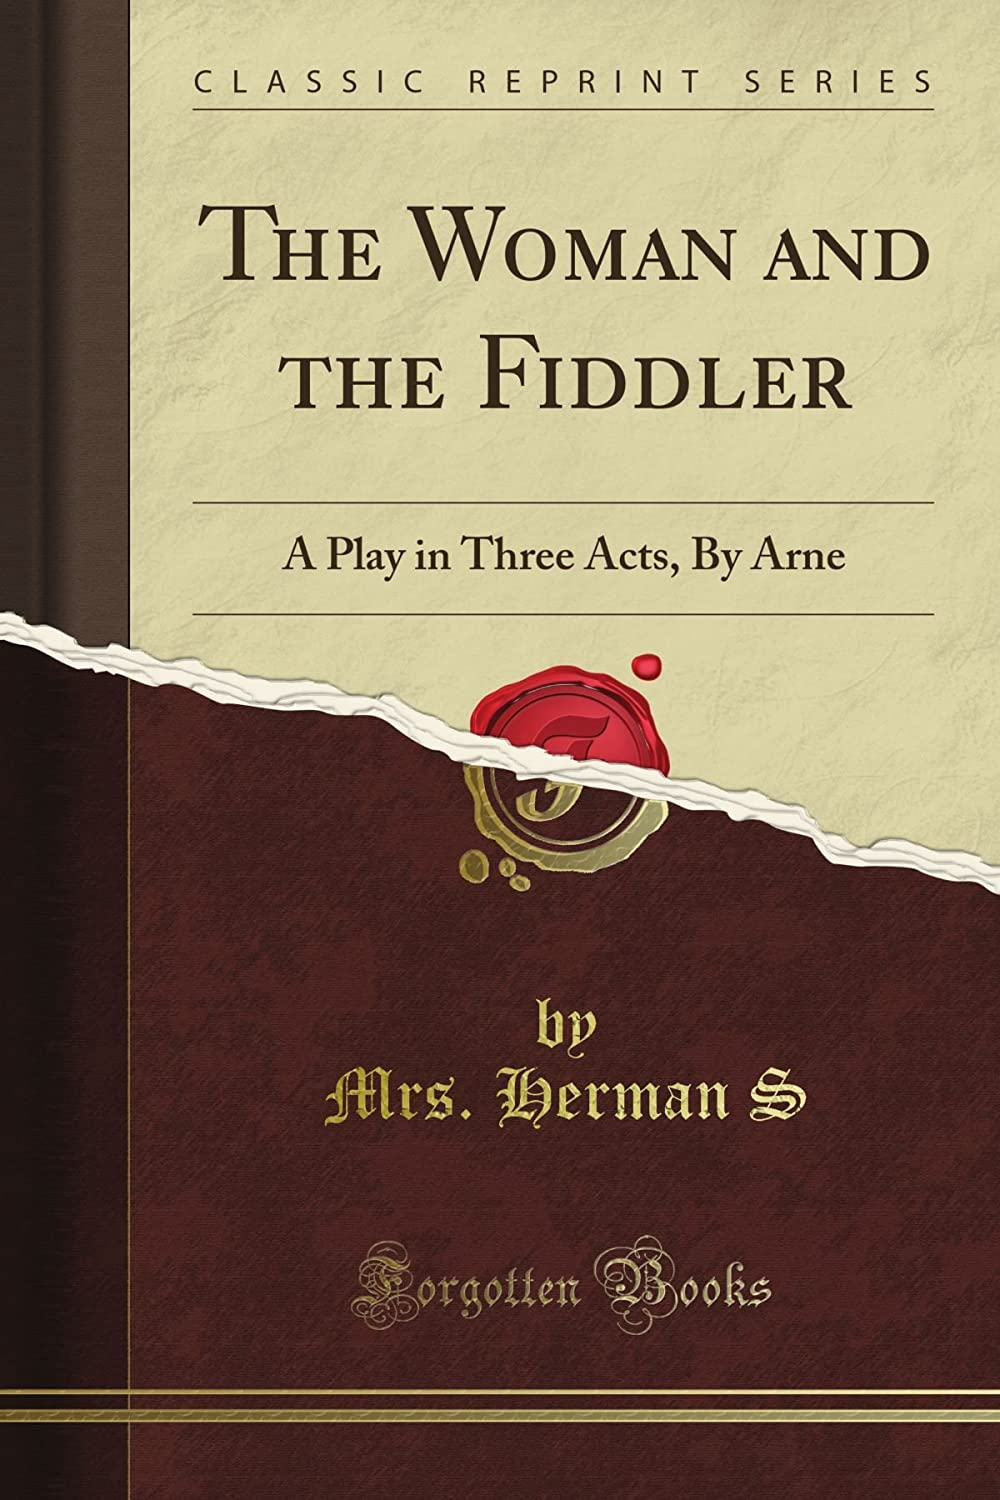 The Woman and the Fiddler: A Play in Three Acts, By Arne (Classic Reprint)